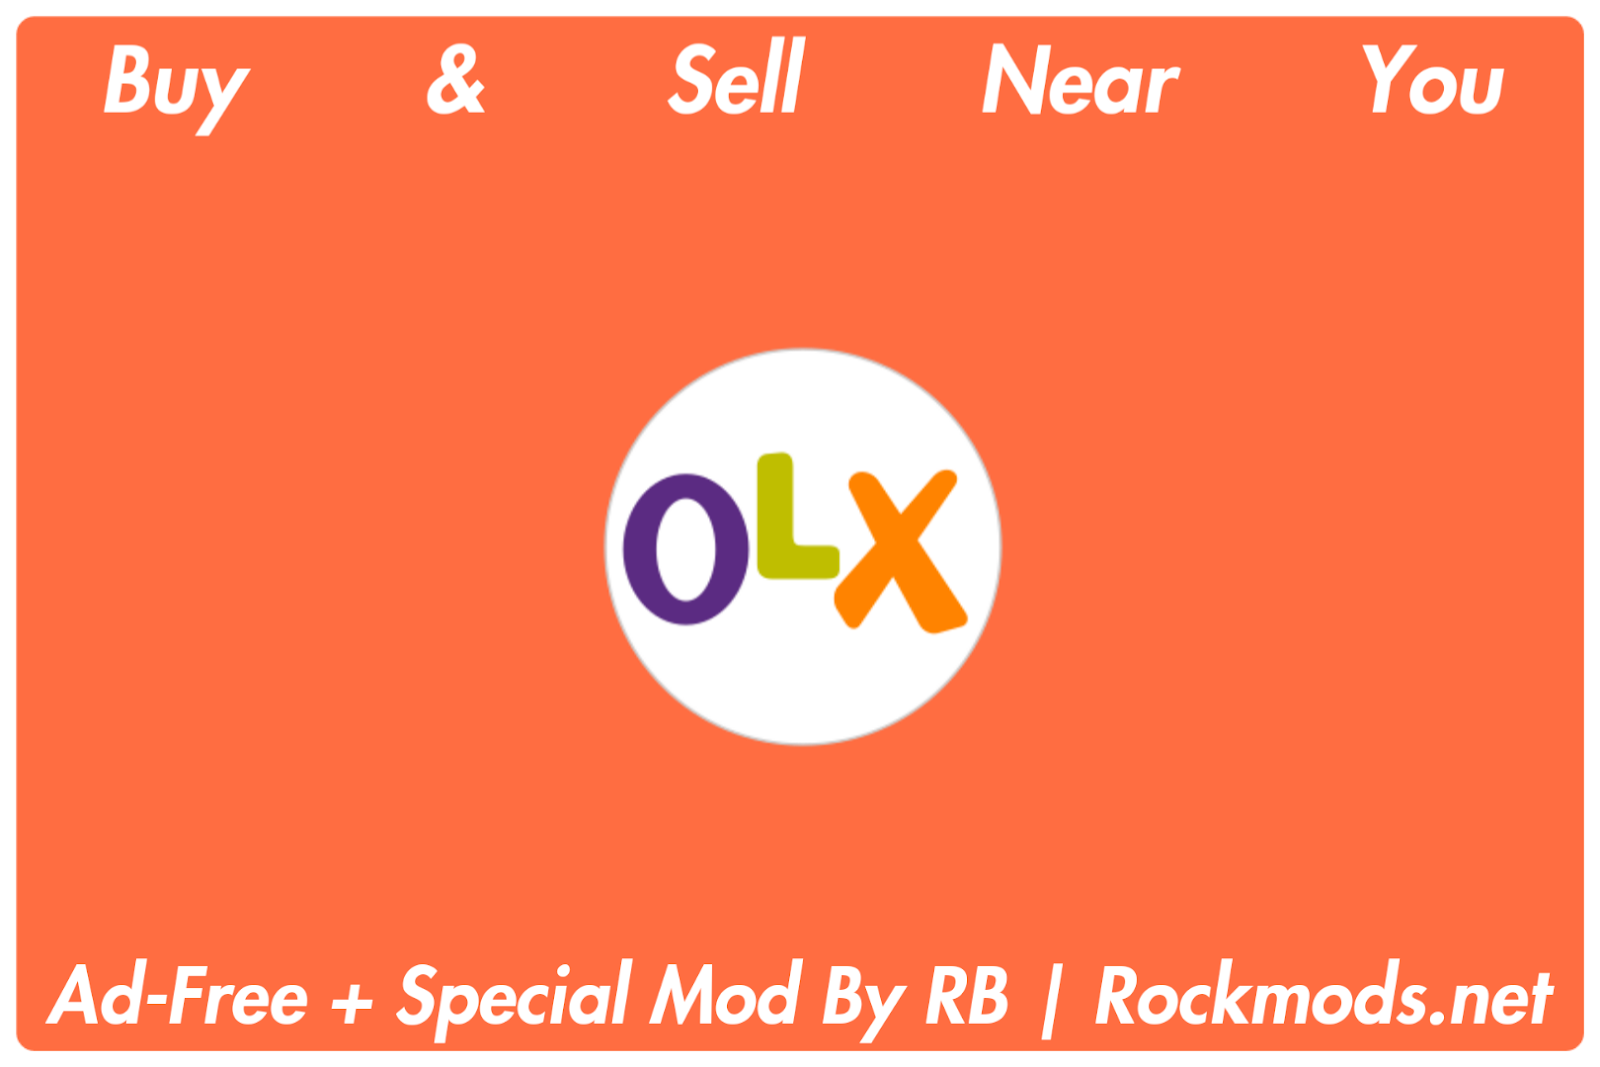 Olx (South Asia) 13 12 03 Adfree + Special Mod by RB